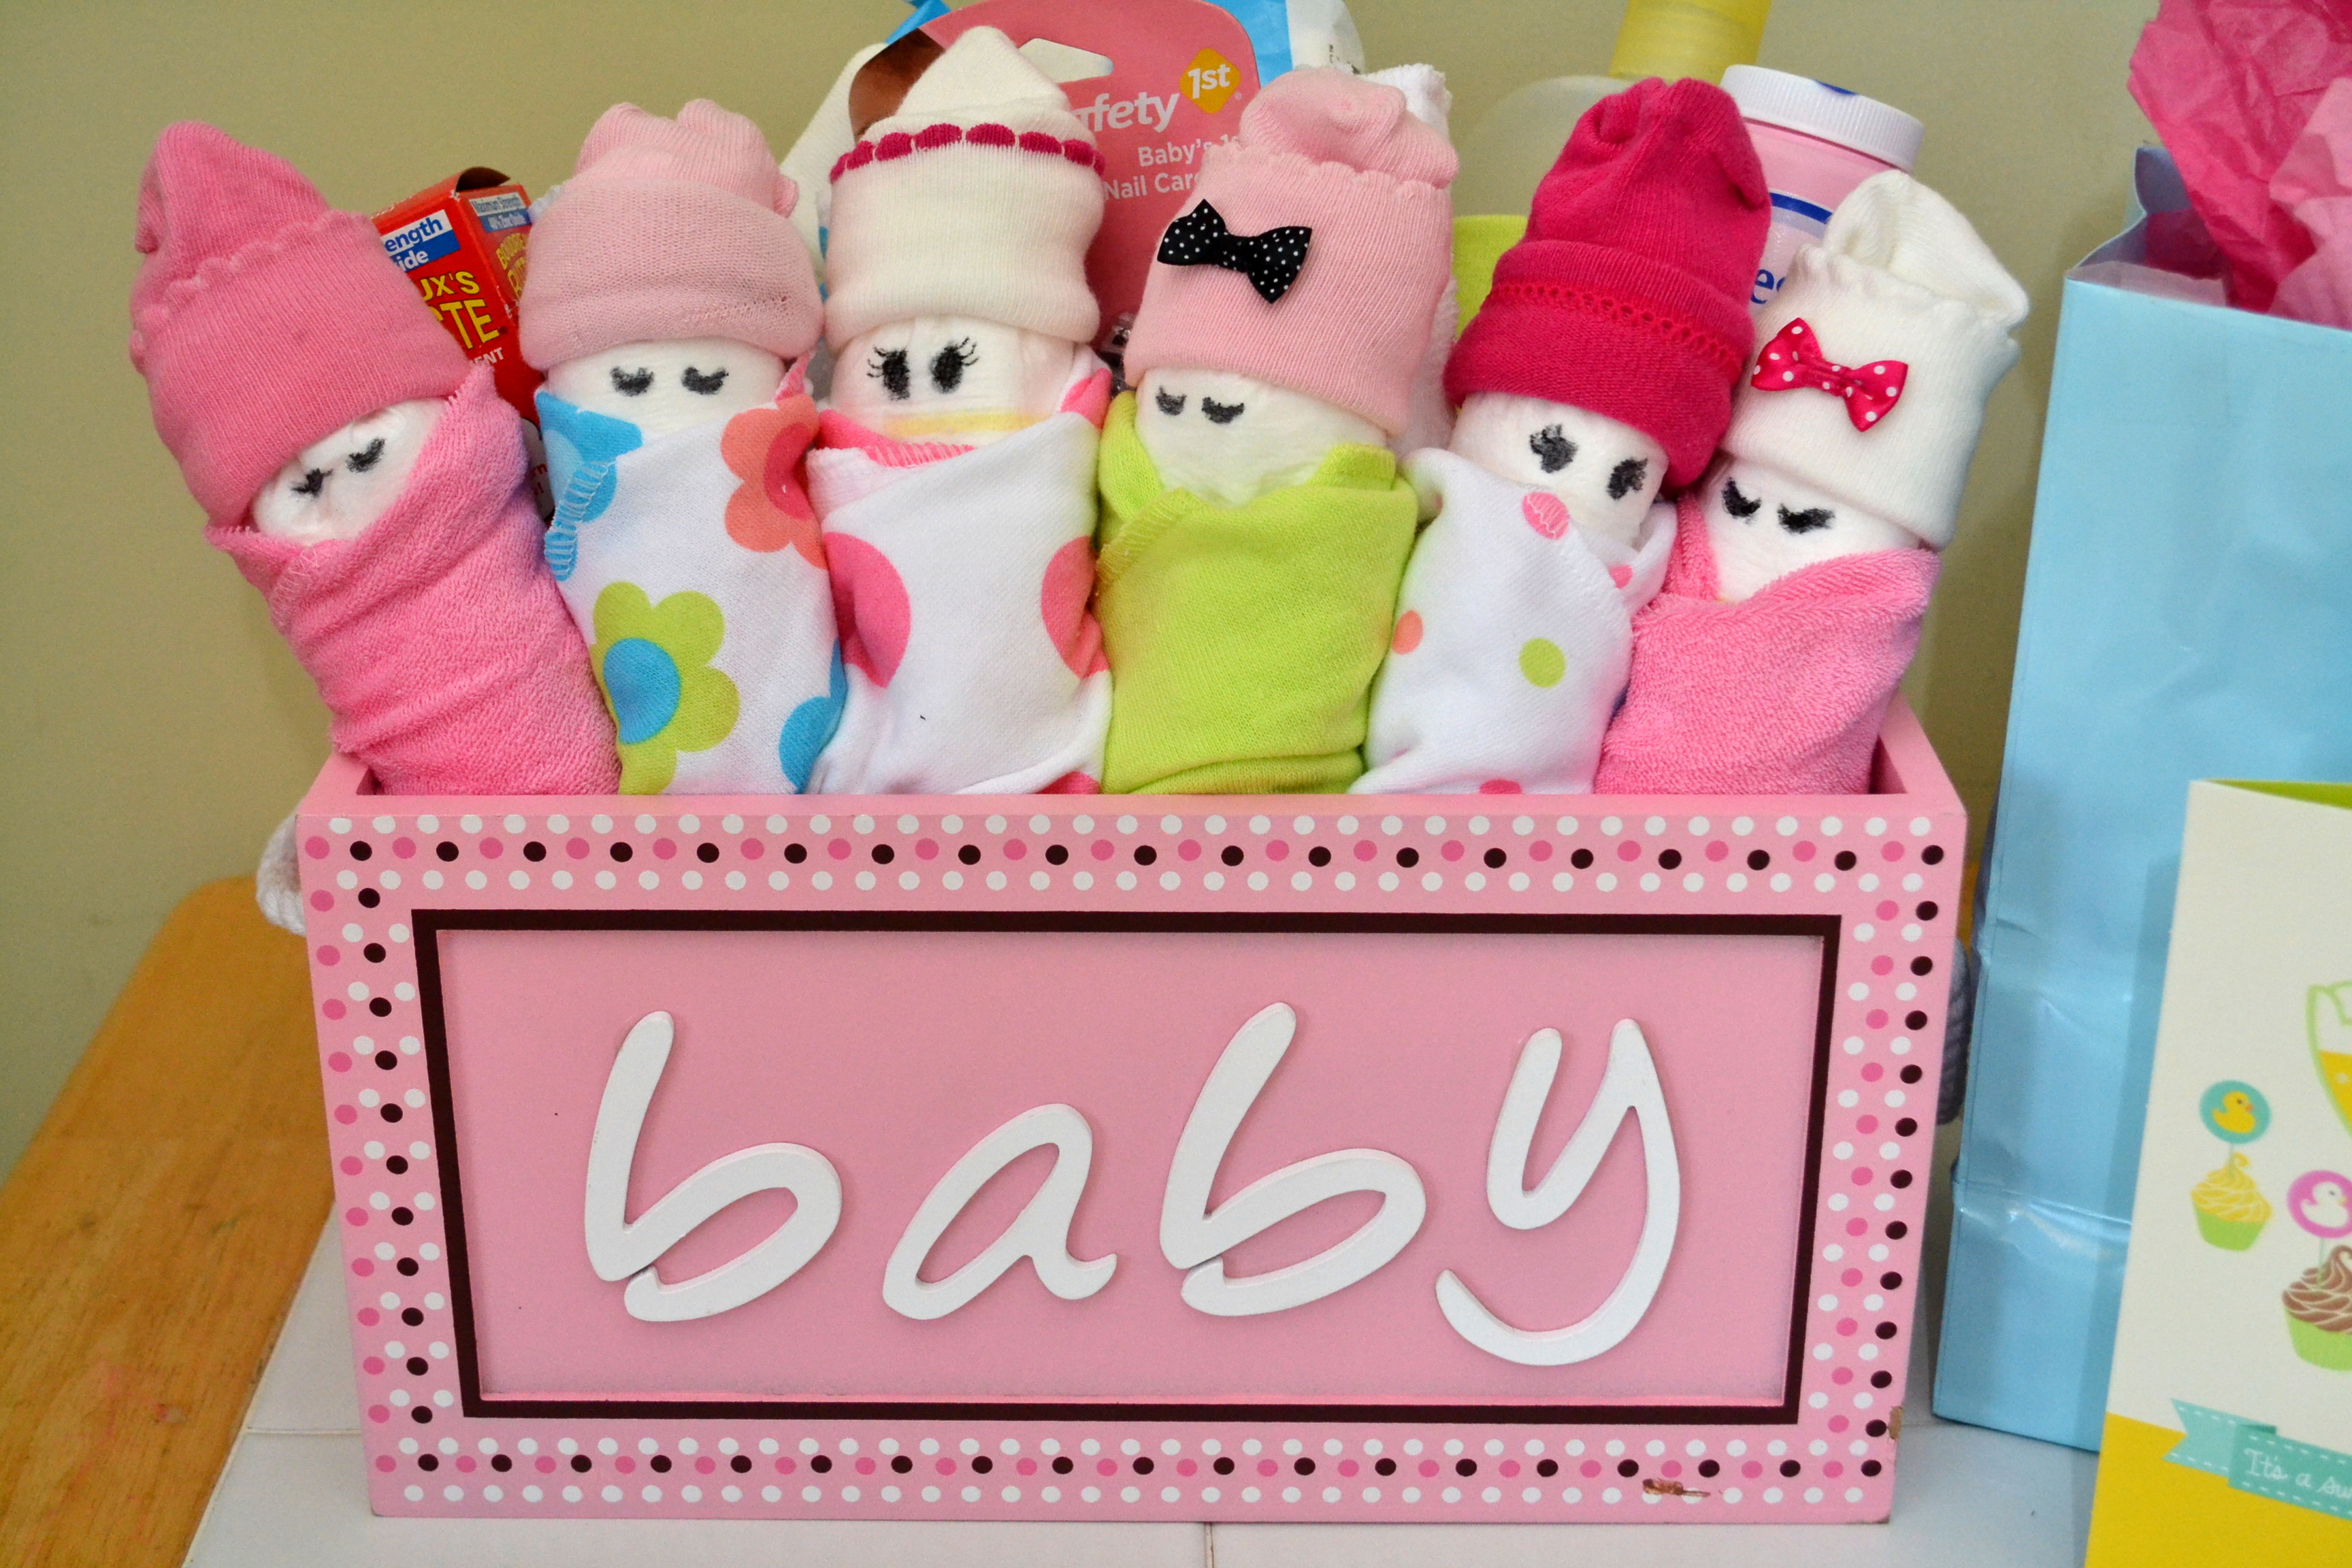 Baby Shower Gifts - Diaper Babies